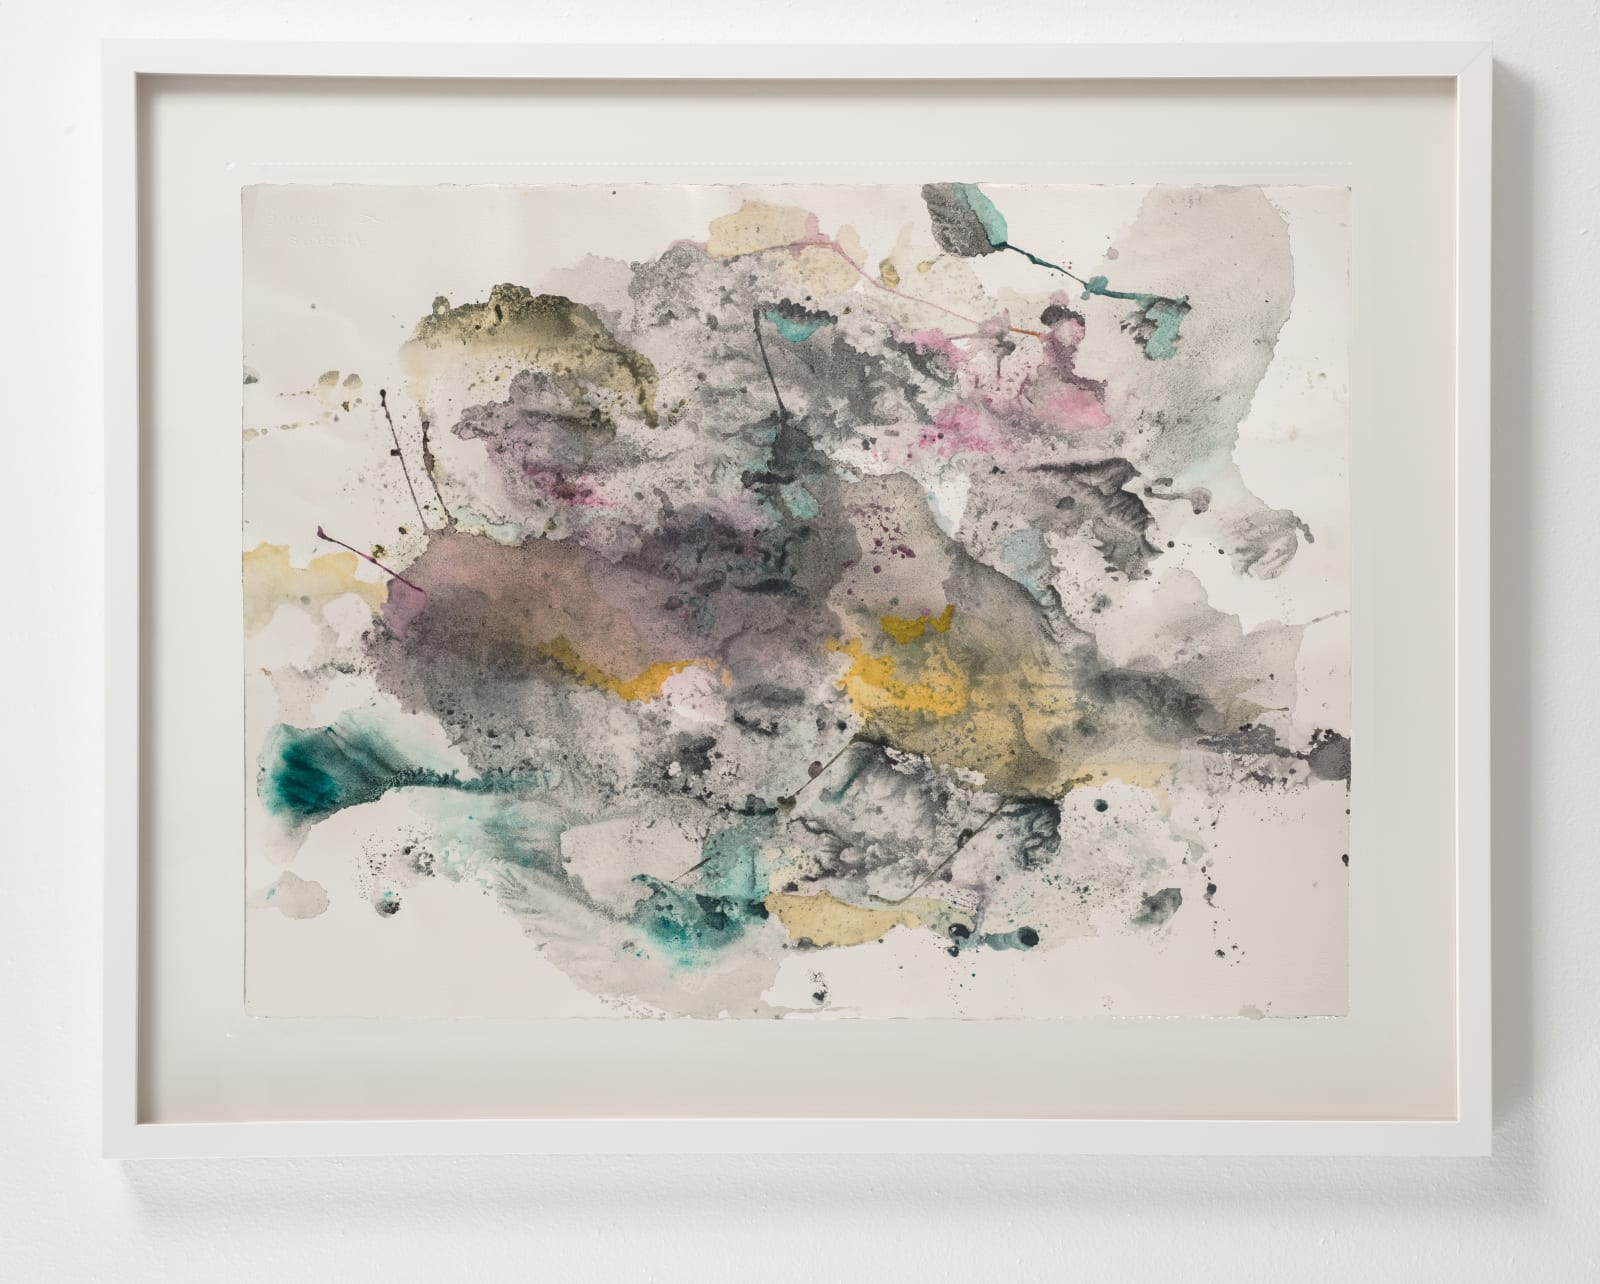 Michele Colburn Kronos, 2020 Gunpowder and watercolors on Arches paper with deckled edges 55.9 x 76.2 cm, 22 x 30 in. (Frame not included) Photo: Lee Stalsworth